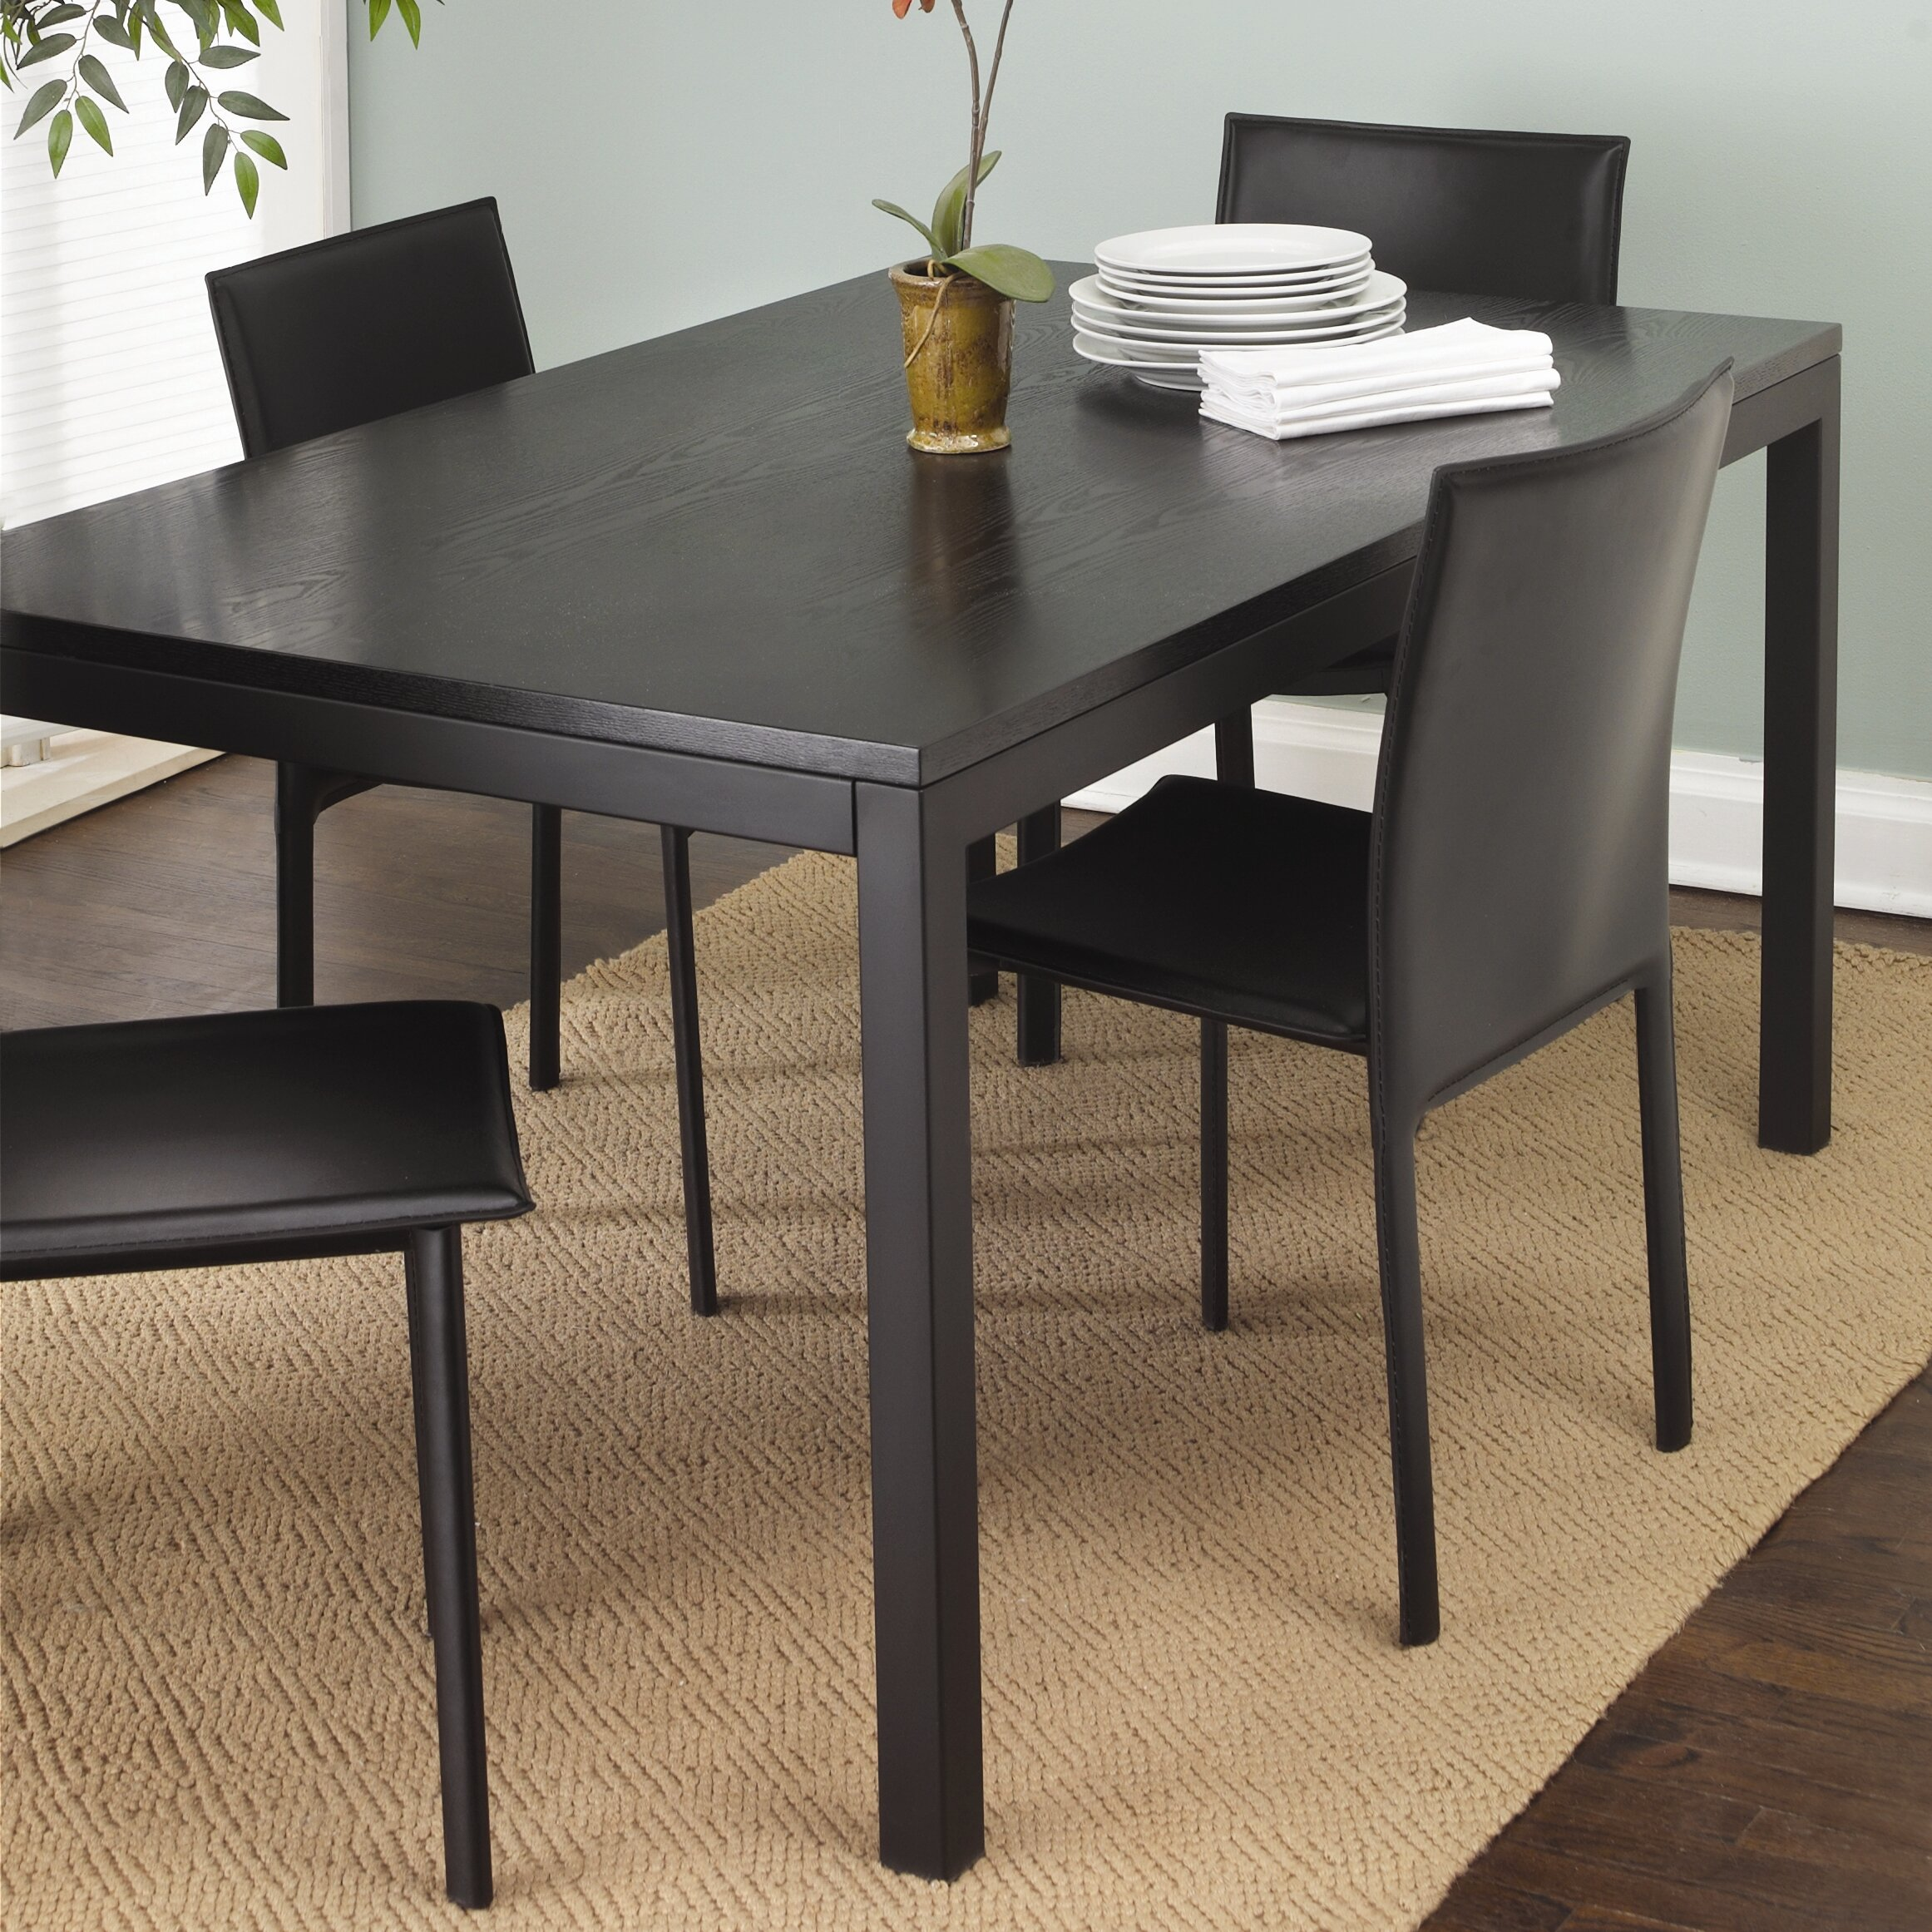 Top Dining Table Chicago Dining Table Chicago Dining Table